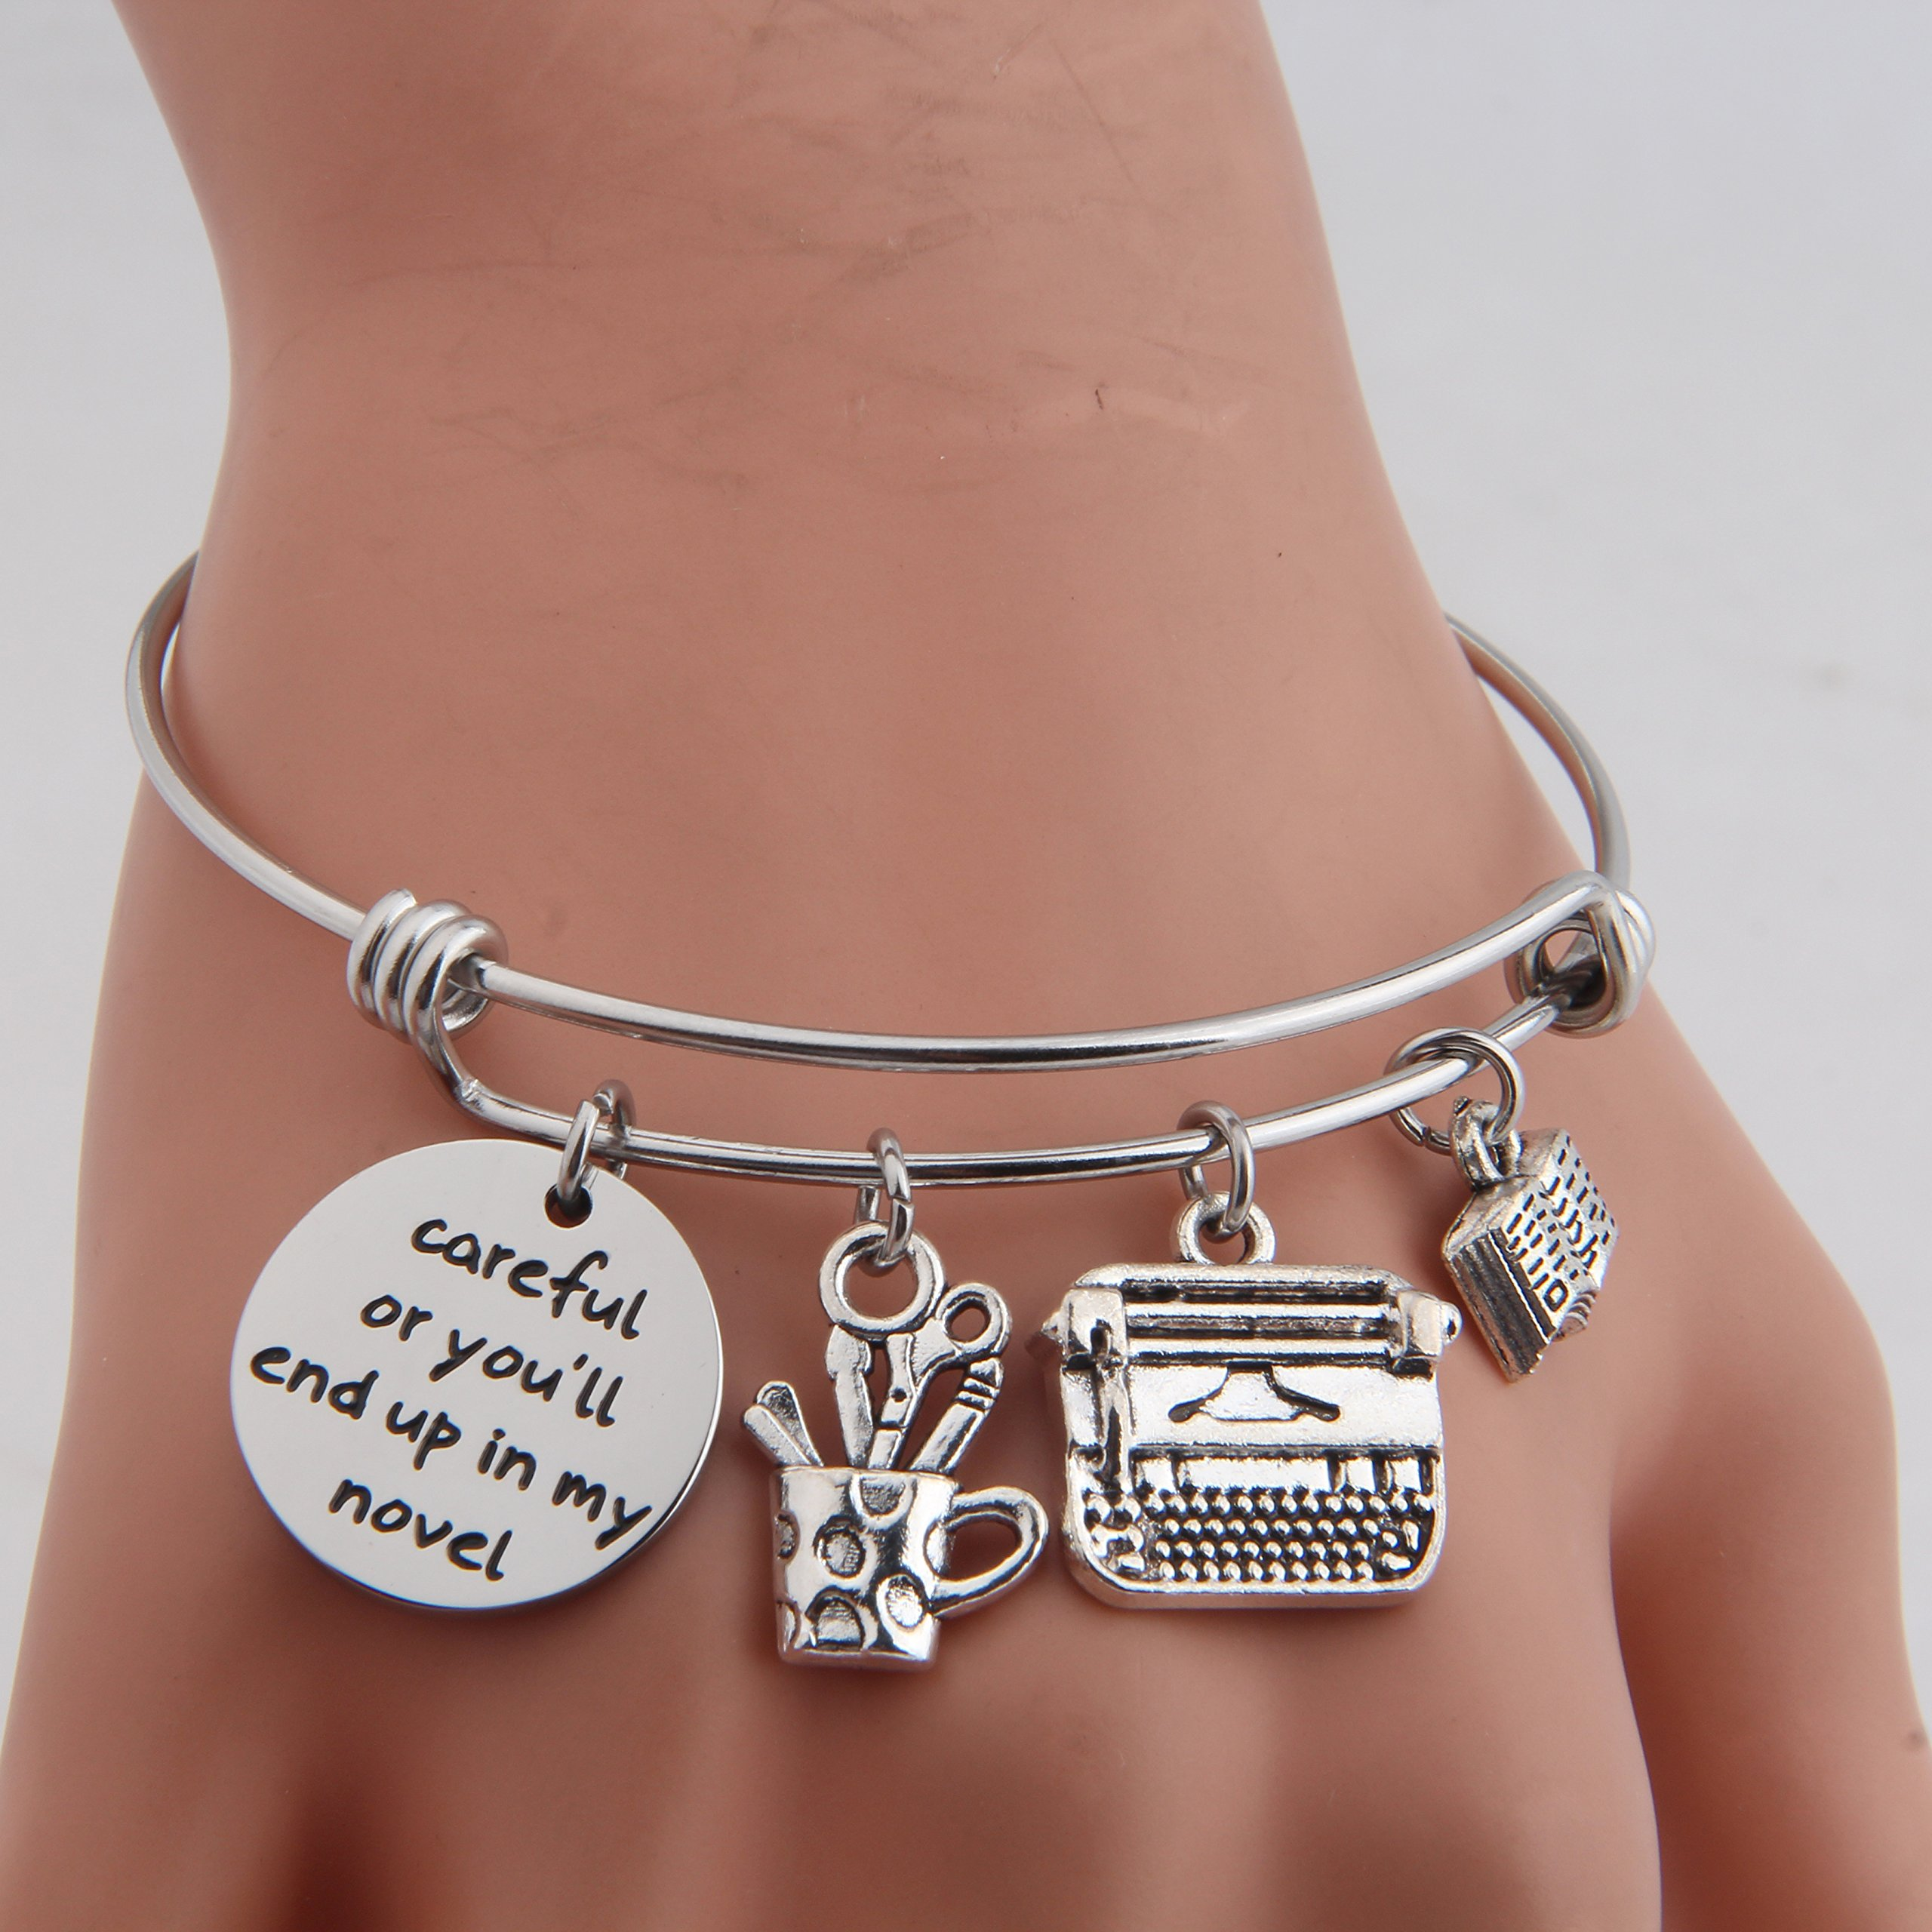 Gzrlyf Writer Bracelet Author Bracelet Writer Gift Novelist Gift Careful Or Youll End Up In My Novel Jewelry Writing Gift Author Jewelry (Writer bracelet) by Gzrlyf (Image #2)